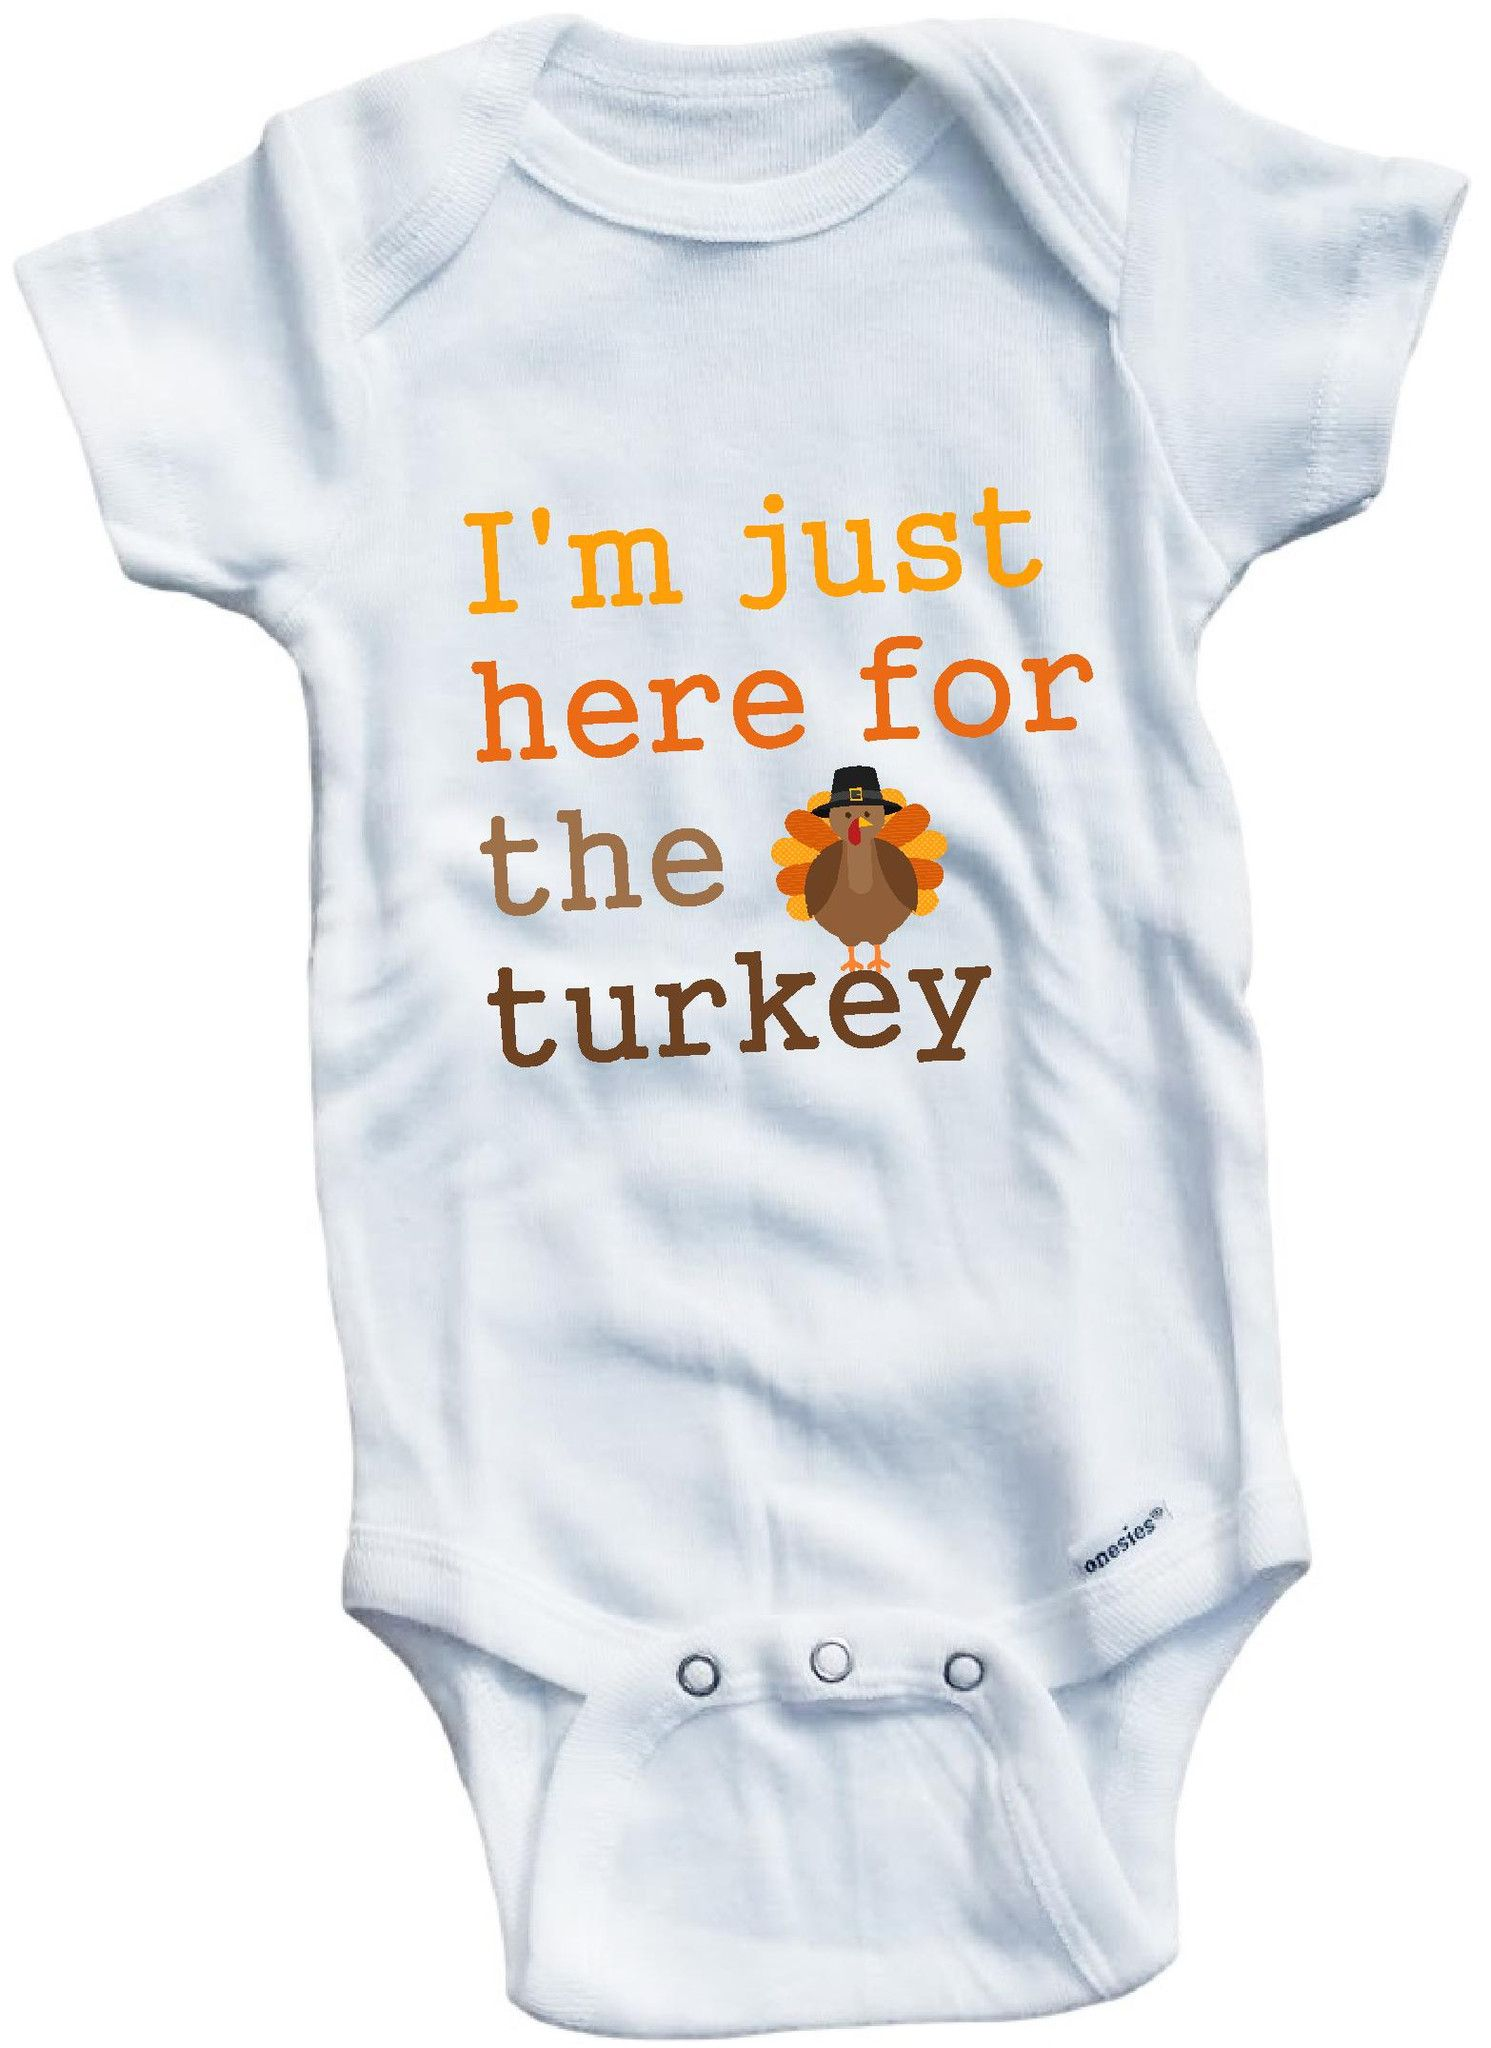 cd20401239a I m just here for the turkey Thanksgiving cute infant clothing funny baby  clothes bodysuit one piece romper creeper